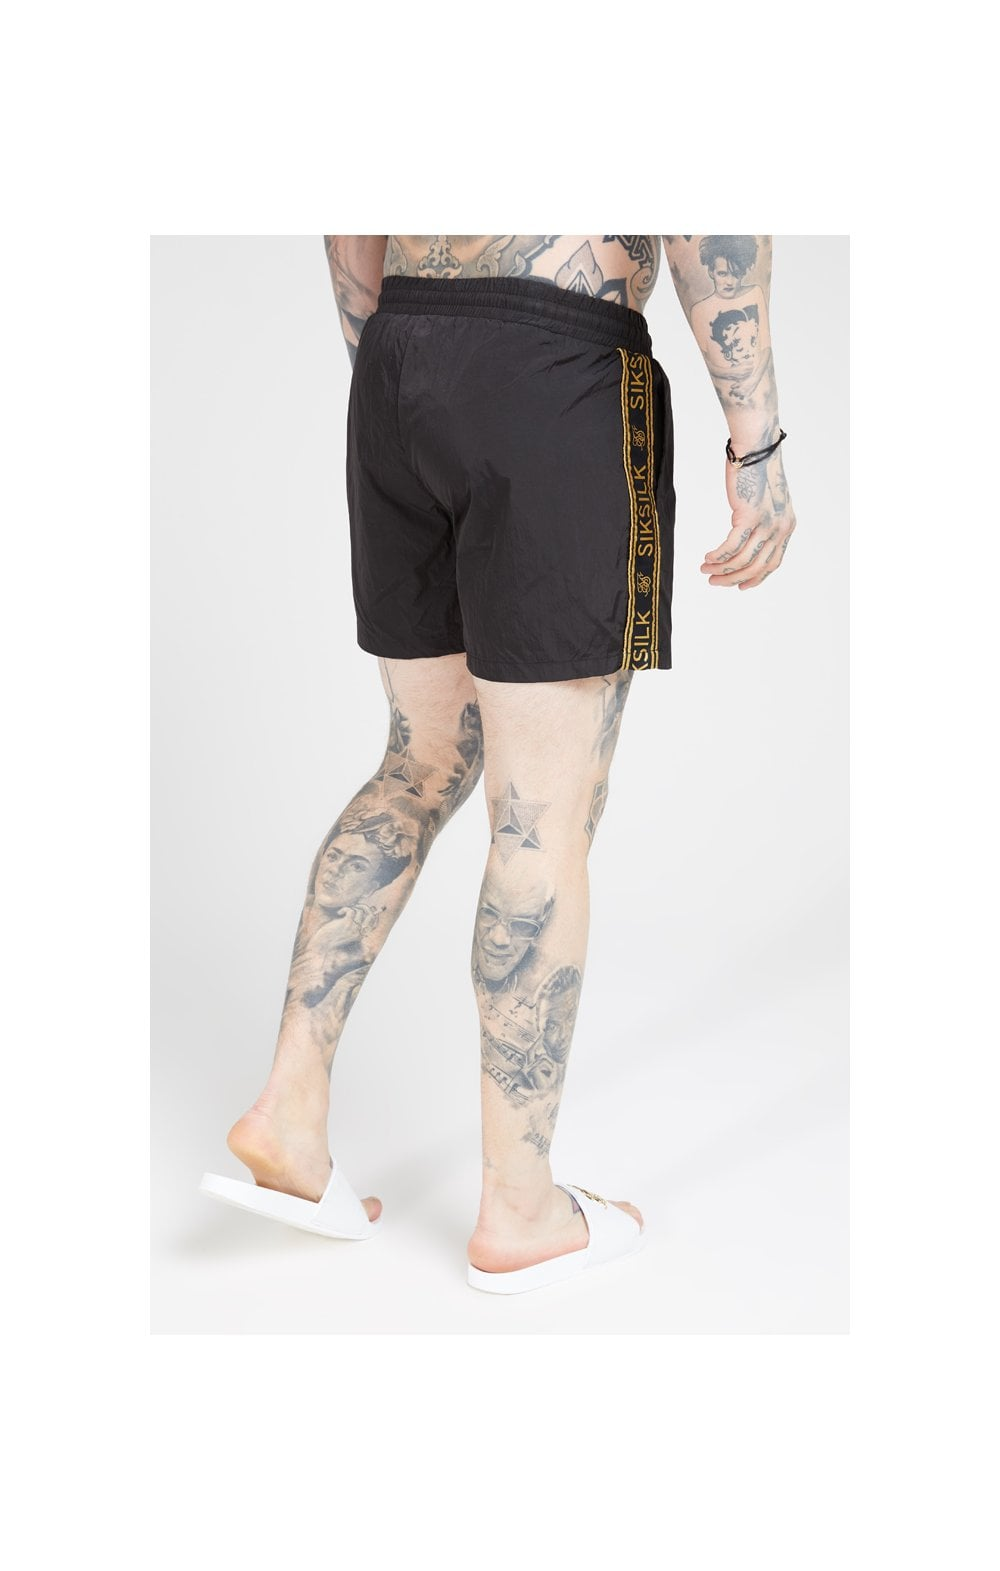 SikSilk Crushed Nylon Tape Shorts – Black & Gold (4)